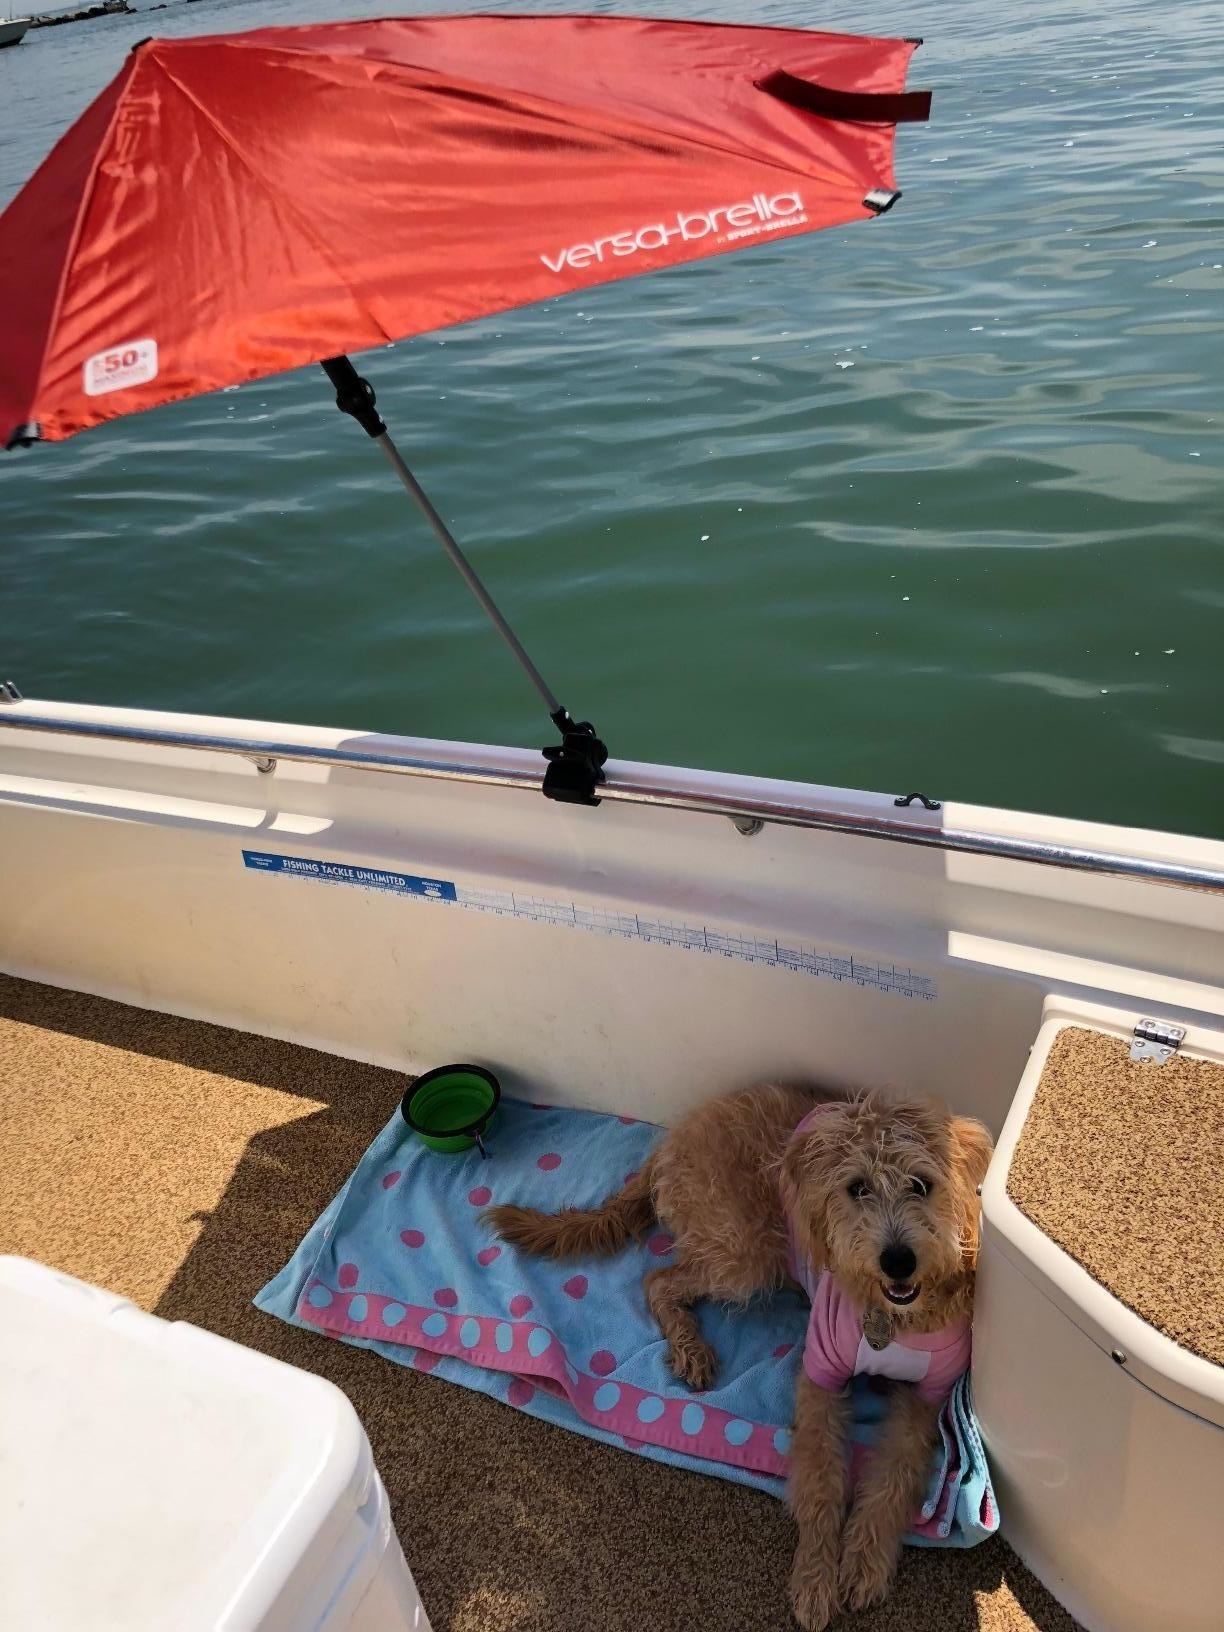 Reviewer photo of the umbrella on the side of a boat with a dog sitting on a towel under it